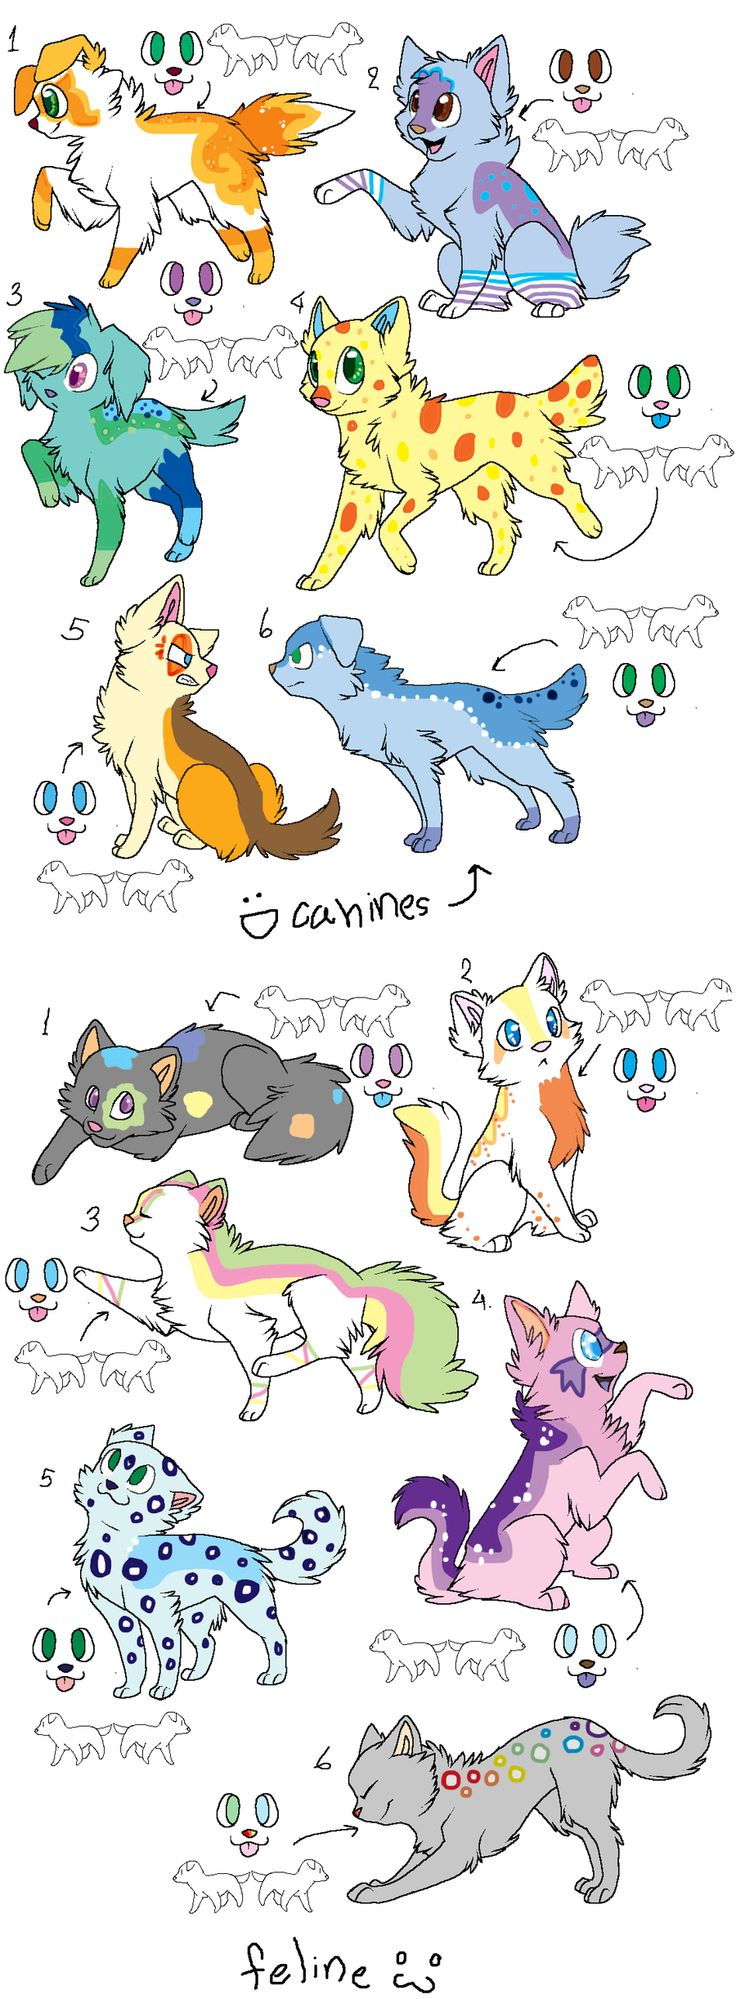 Canines 1 2 5 and 6 are mine Felines 1 2 3 and 6 are mine the rest are open